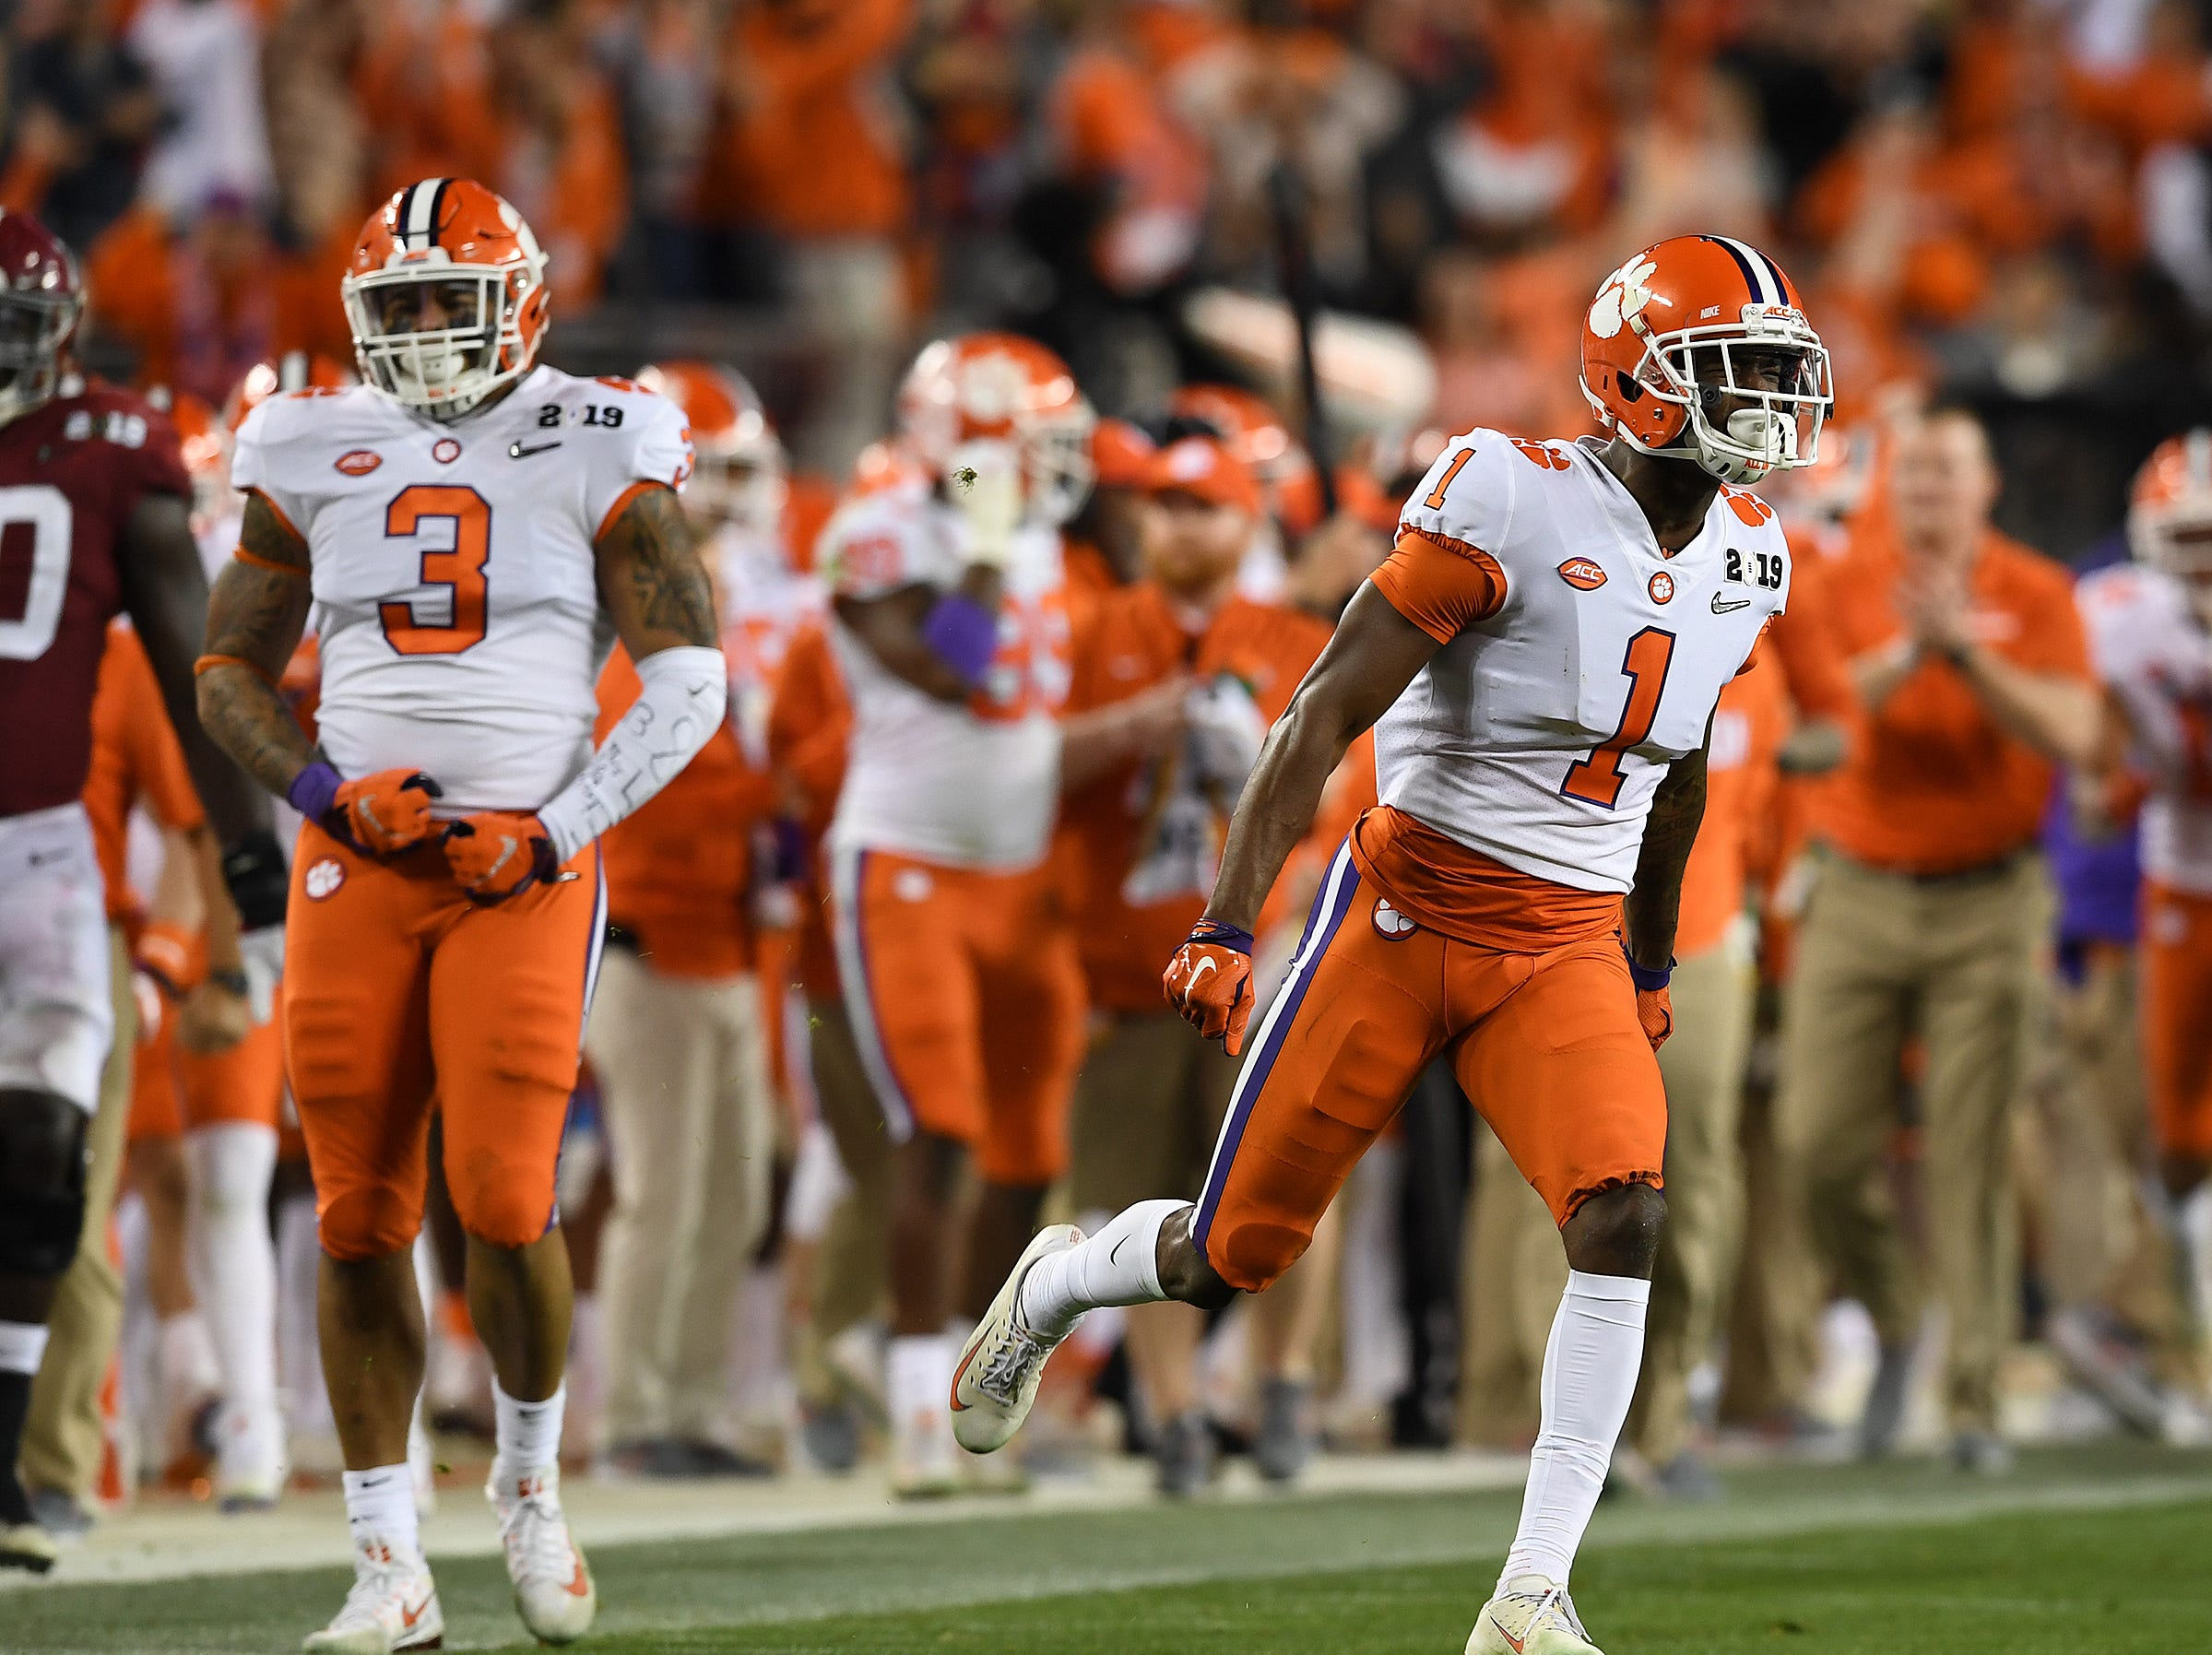 Clemson cornerback Trayvon Mullen (1) reacts after an interception against Alabama during the 2nd quarter of the College Football National Championship at Levi's Stadium in Santa Clara, CA Monday, January 7, 2019.